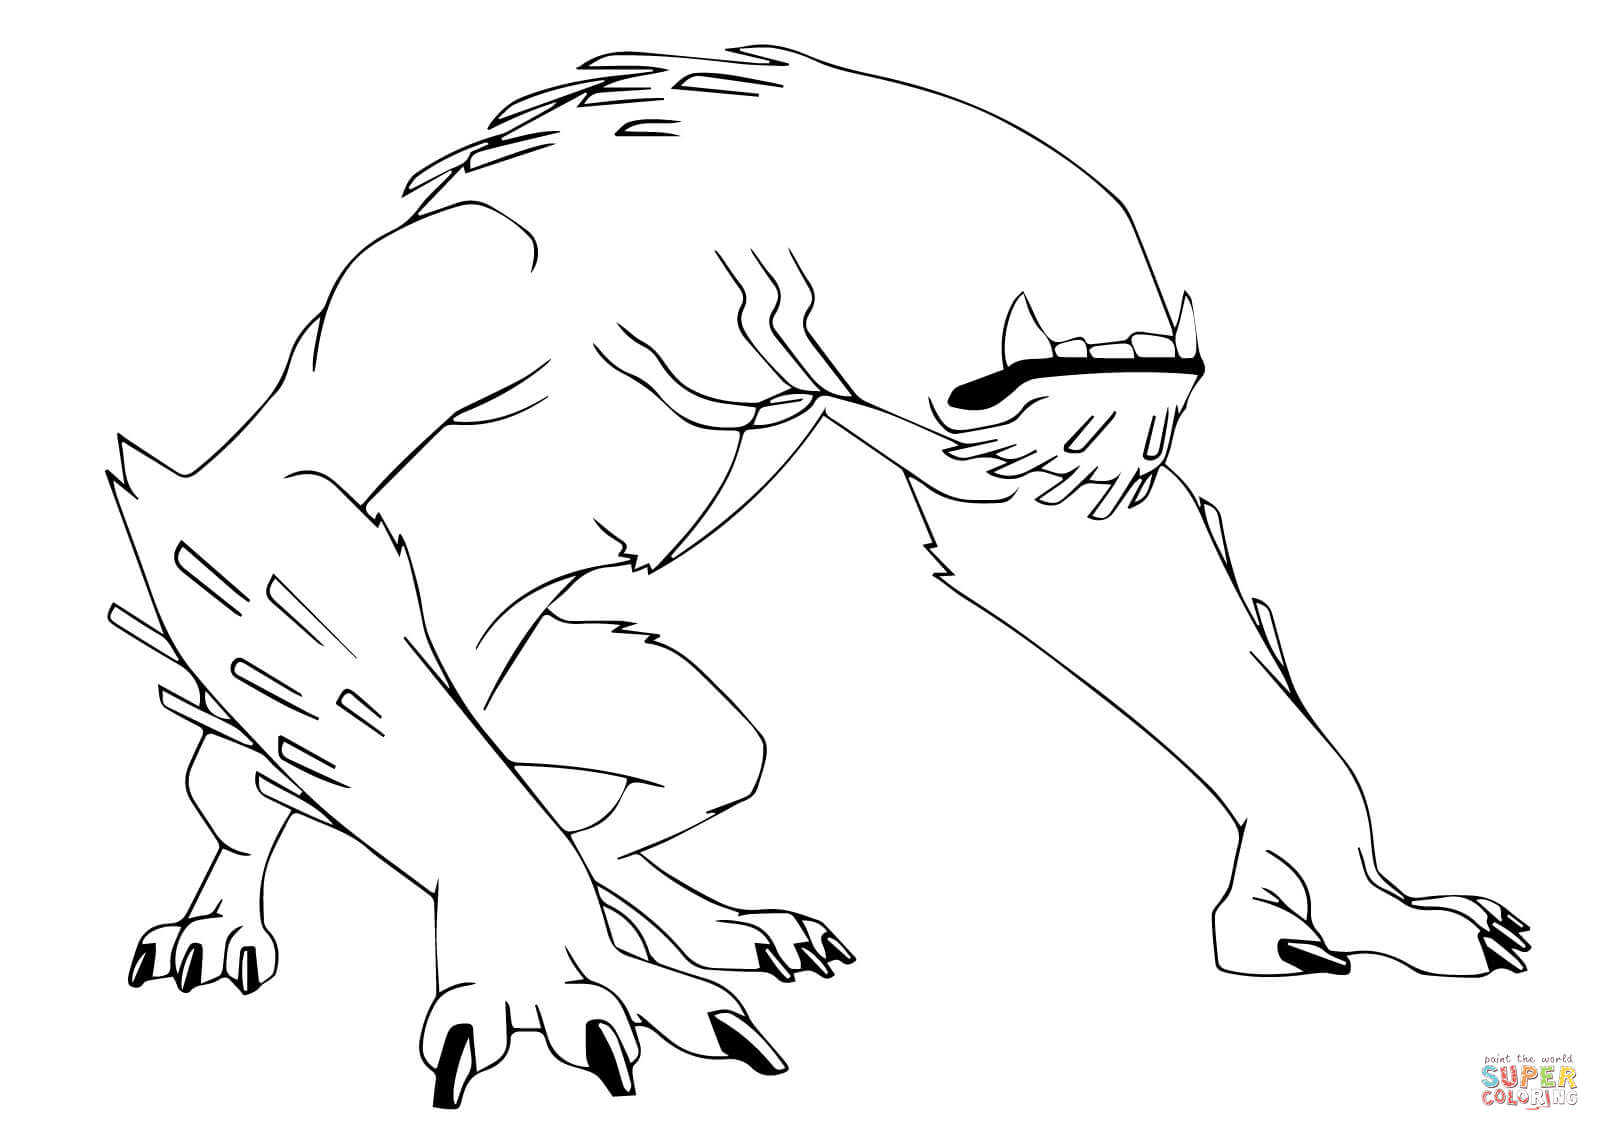 Ben 10 Wildmutt From Ben 10 Coloring Page